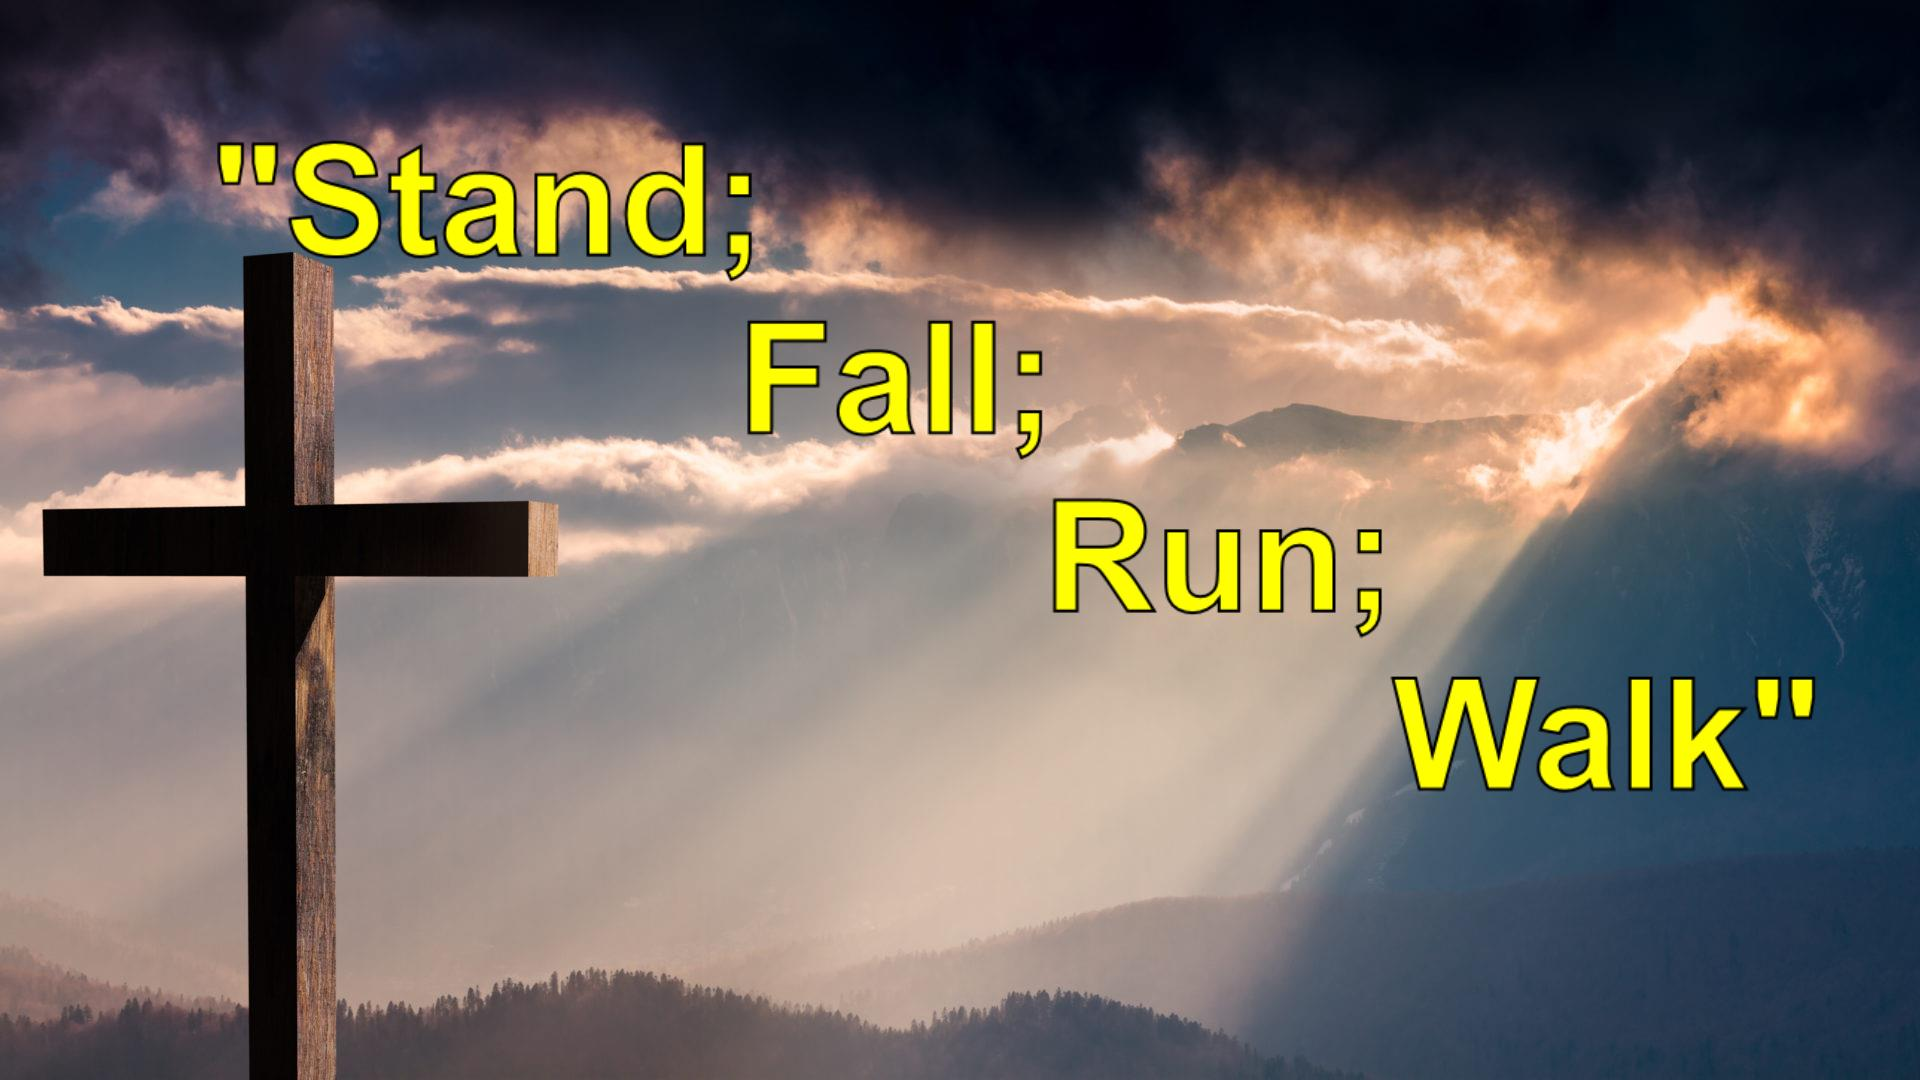 Stand; Fall; Run; Walk